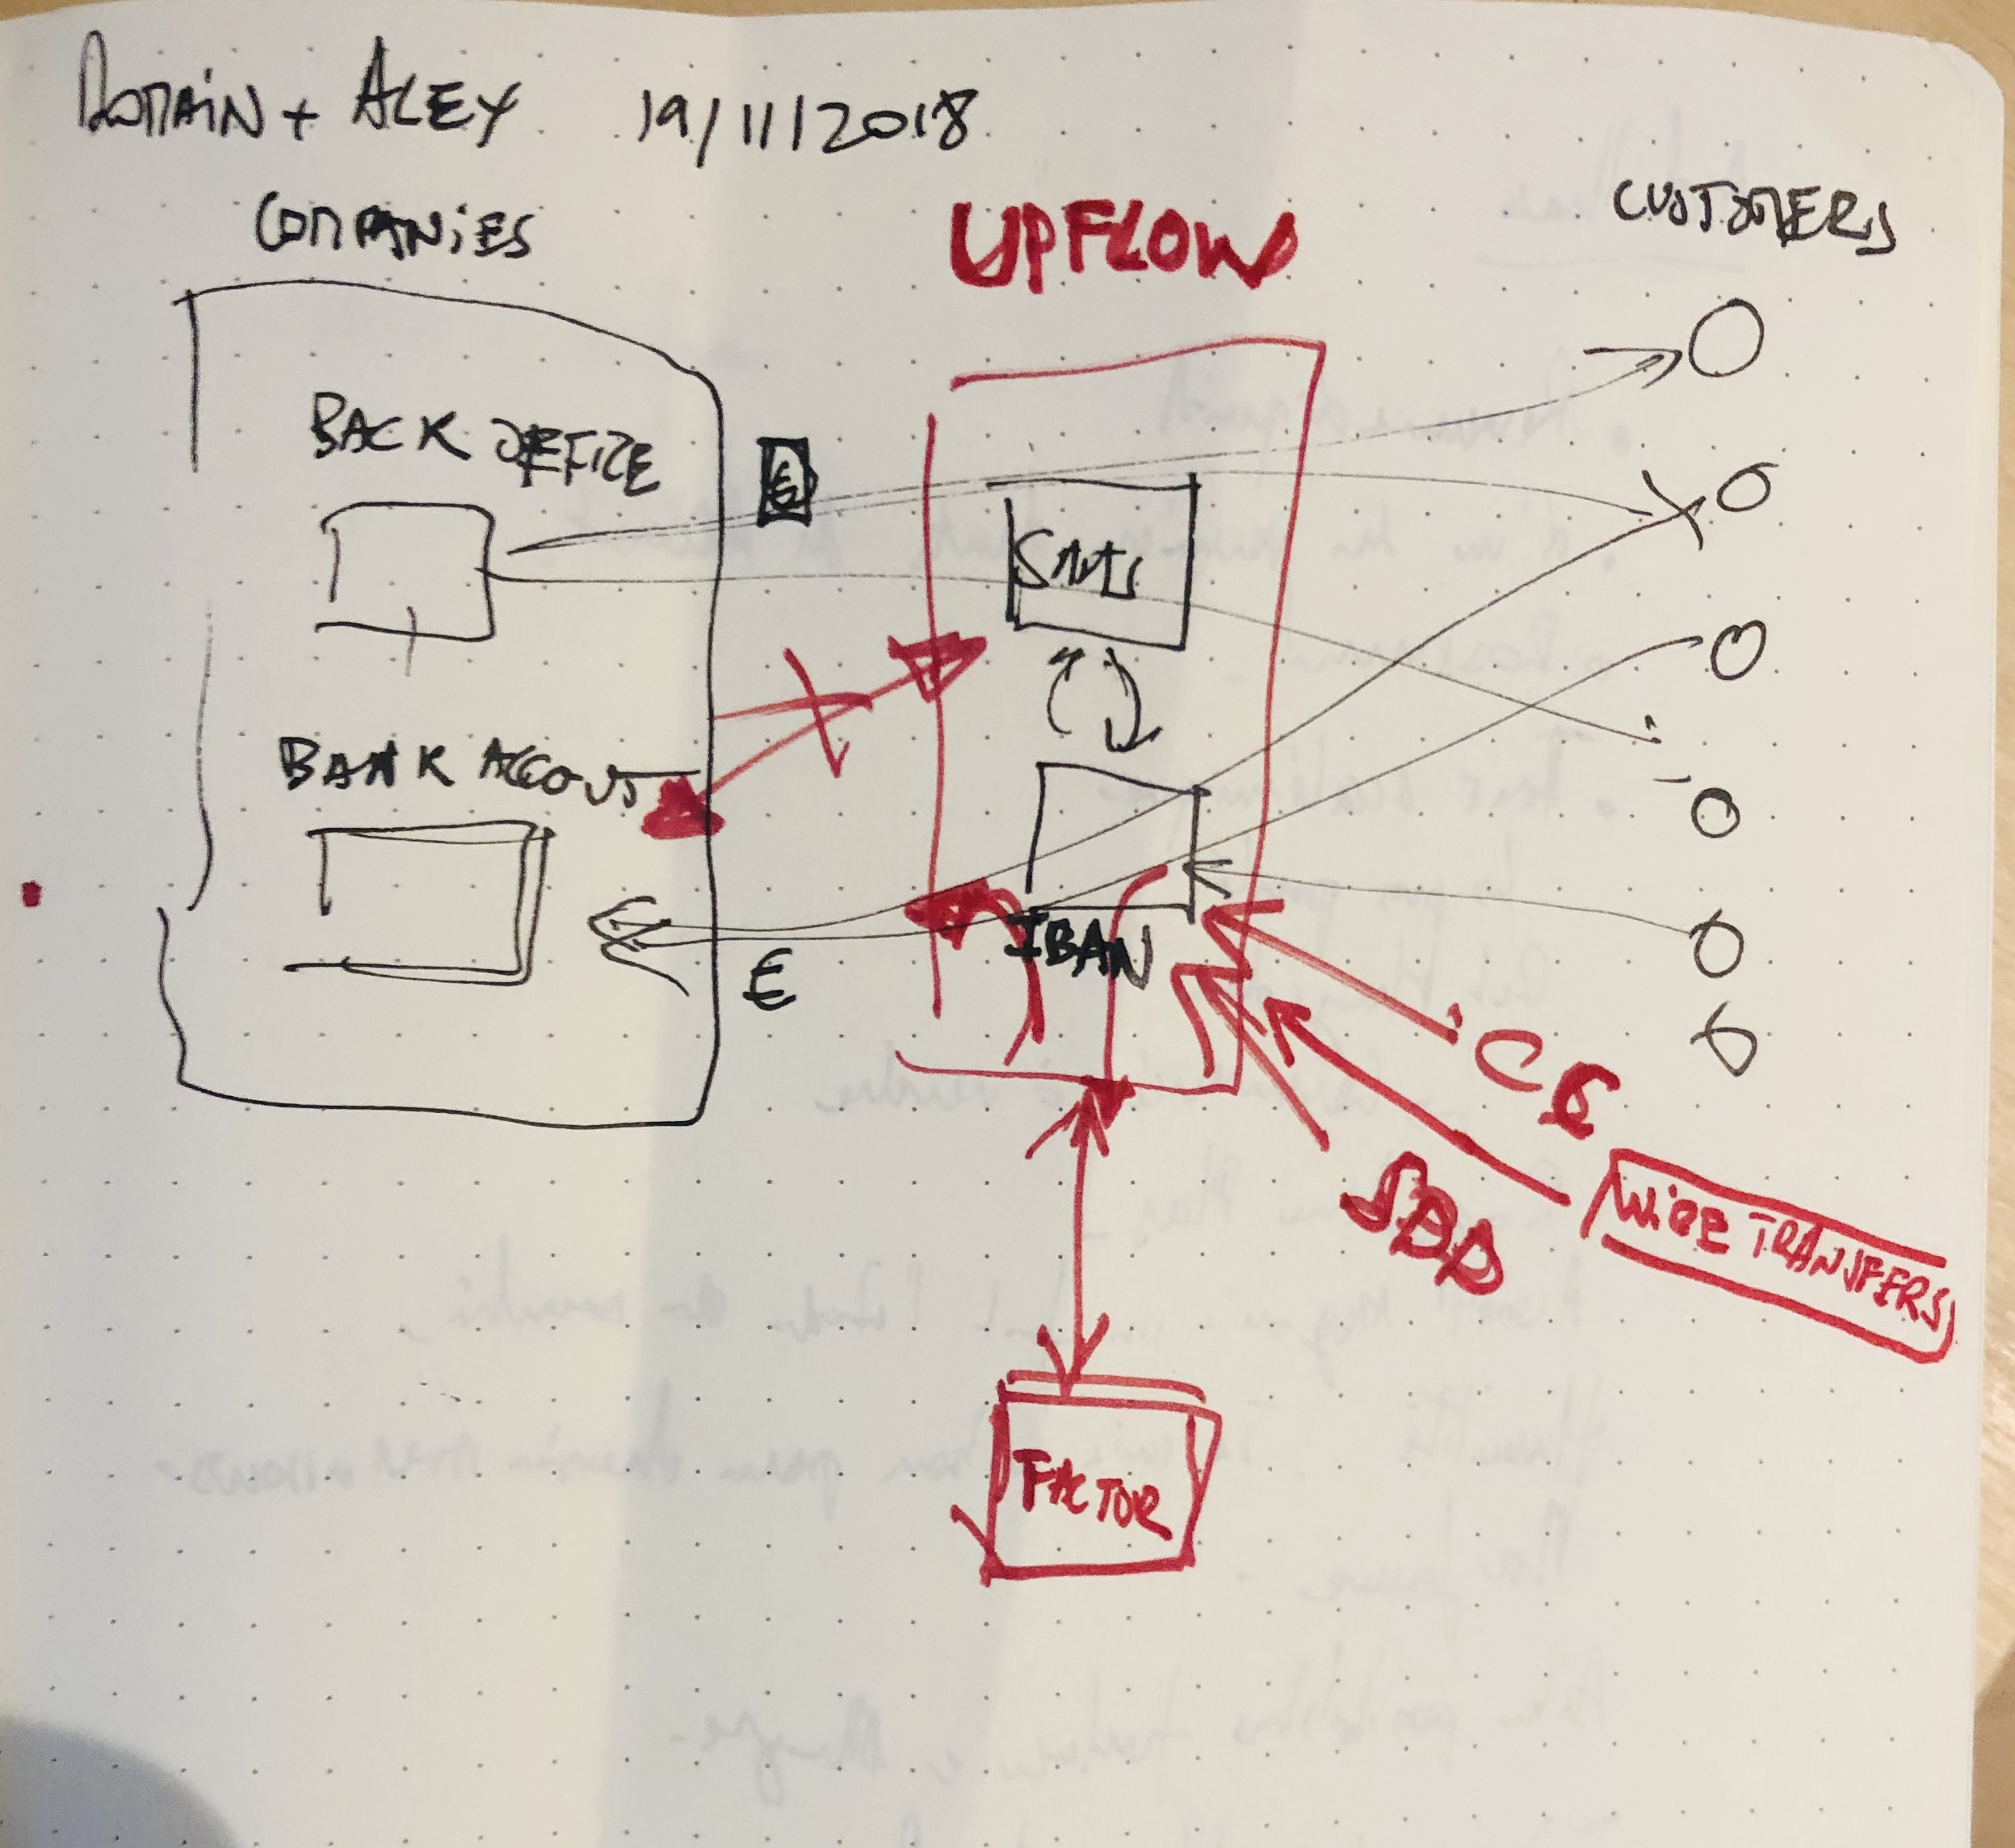 Upflow turbocharges your invoices Upflow sketch